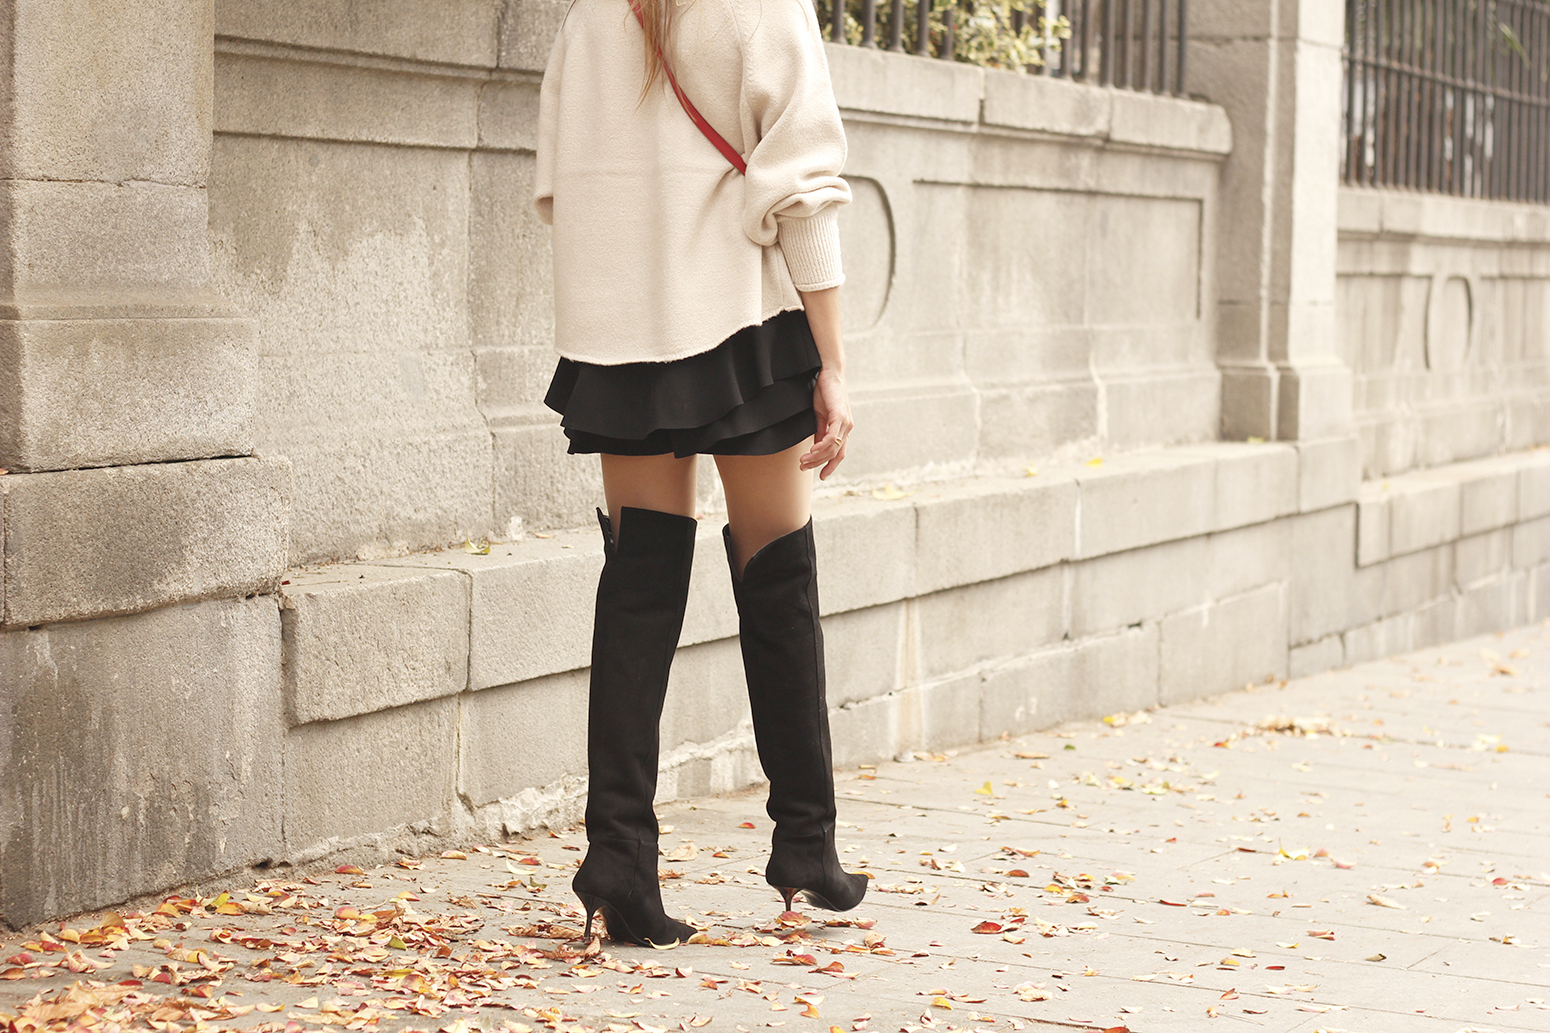 beige jersey with embroidered flowers over the knee black boots red hat street style fashion inspiration outfit14